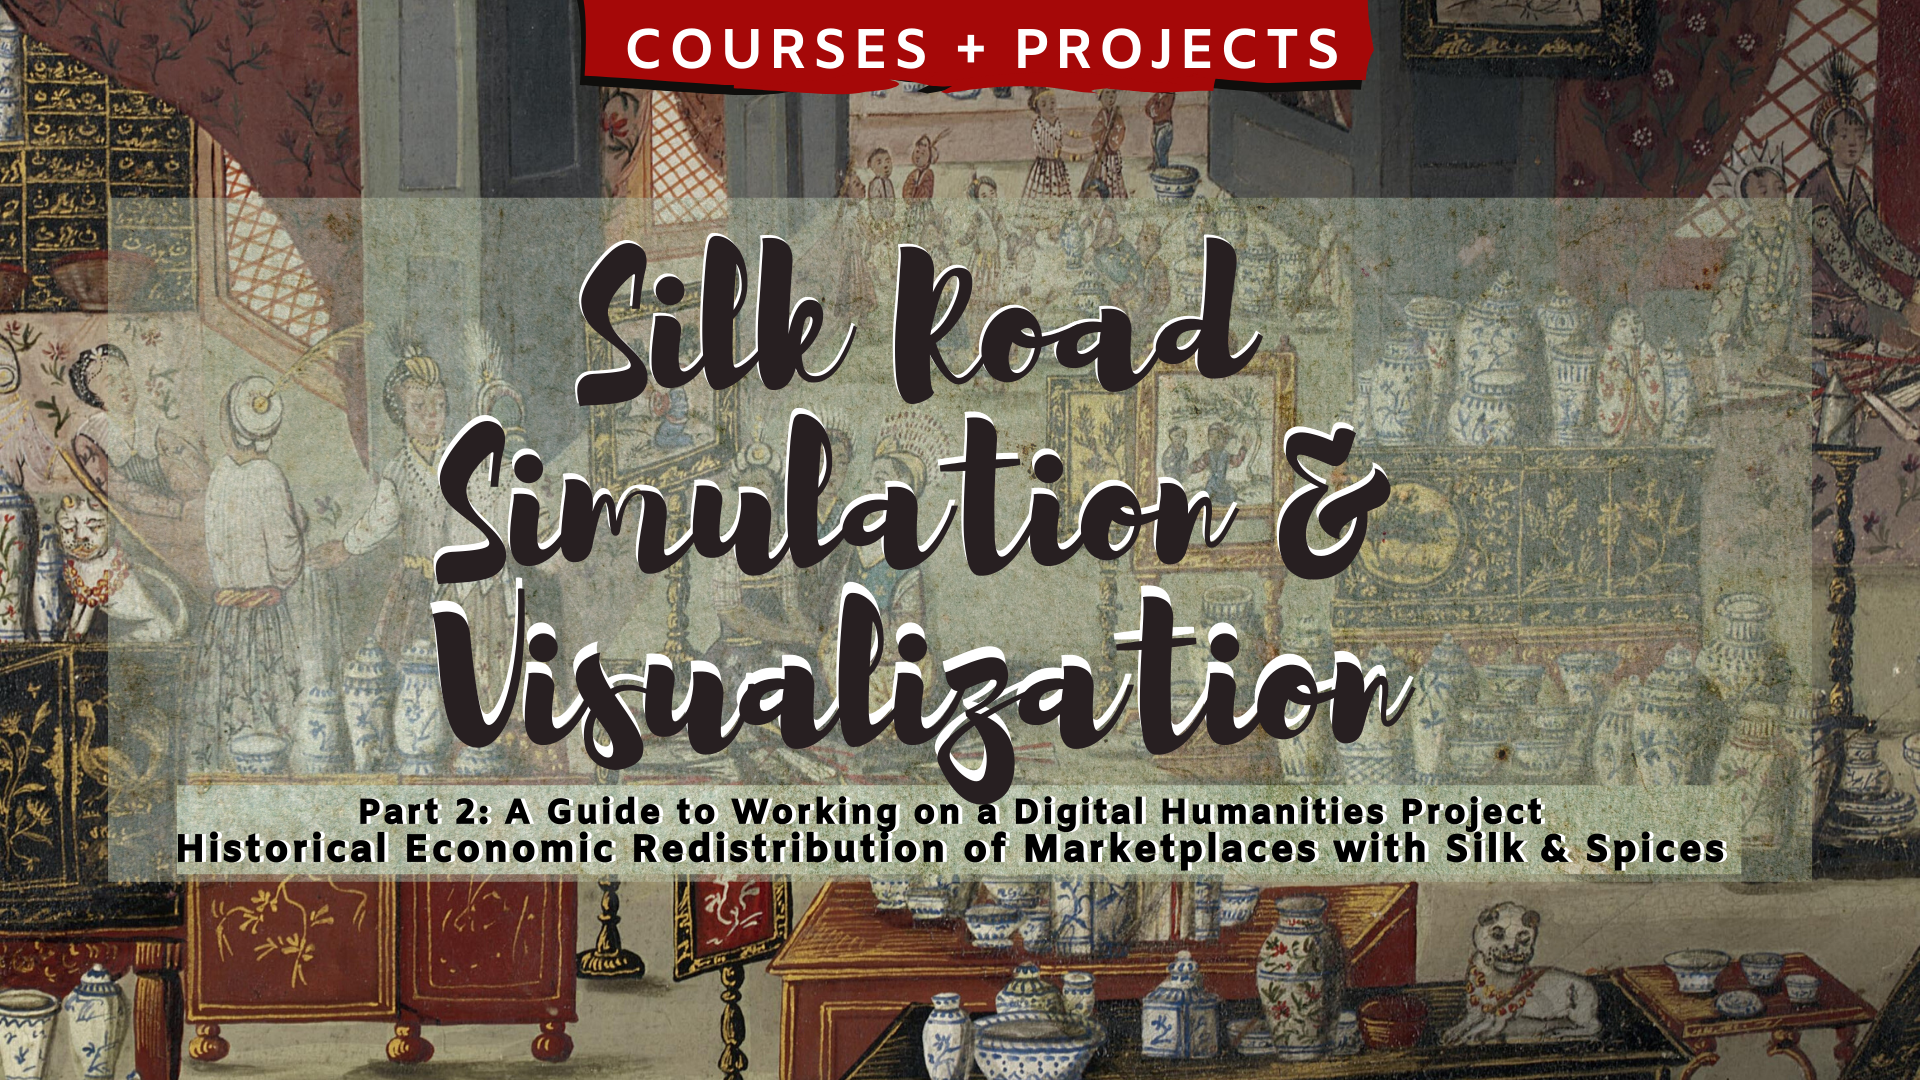 Silk Road Simulation and Visualization 1 Part 2: A Guide to Working on a Digital Humanities Project Historical Economic Redistribution of Marketplaces with Silk & Spices with a background from The Mercantile Effect